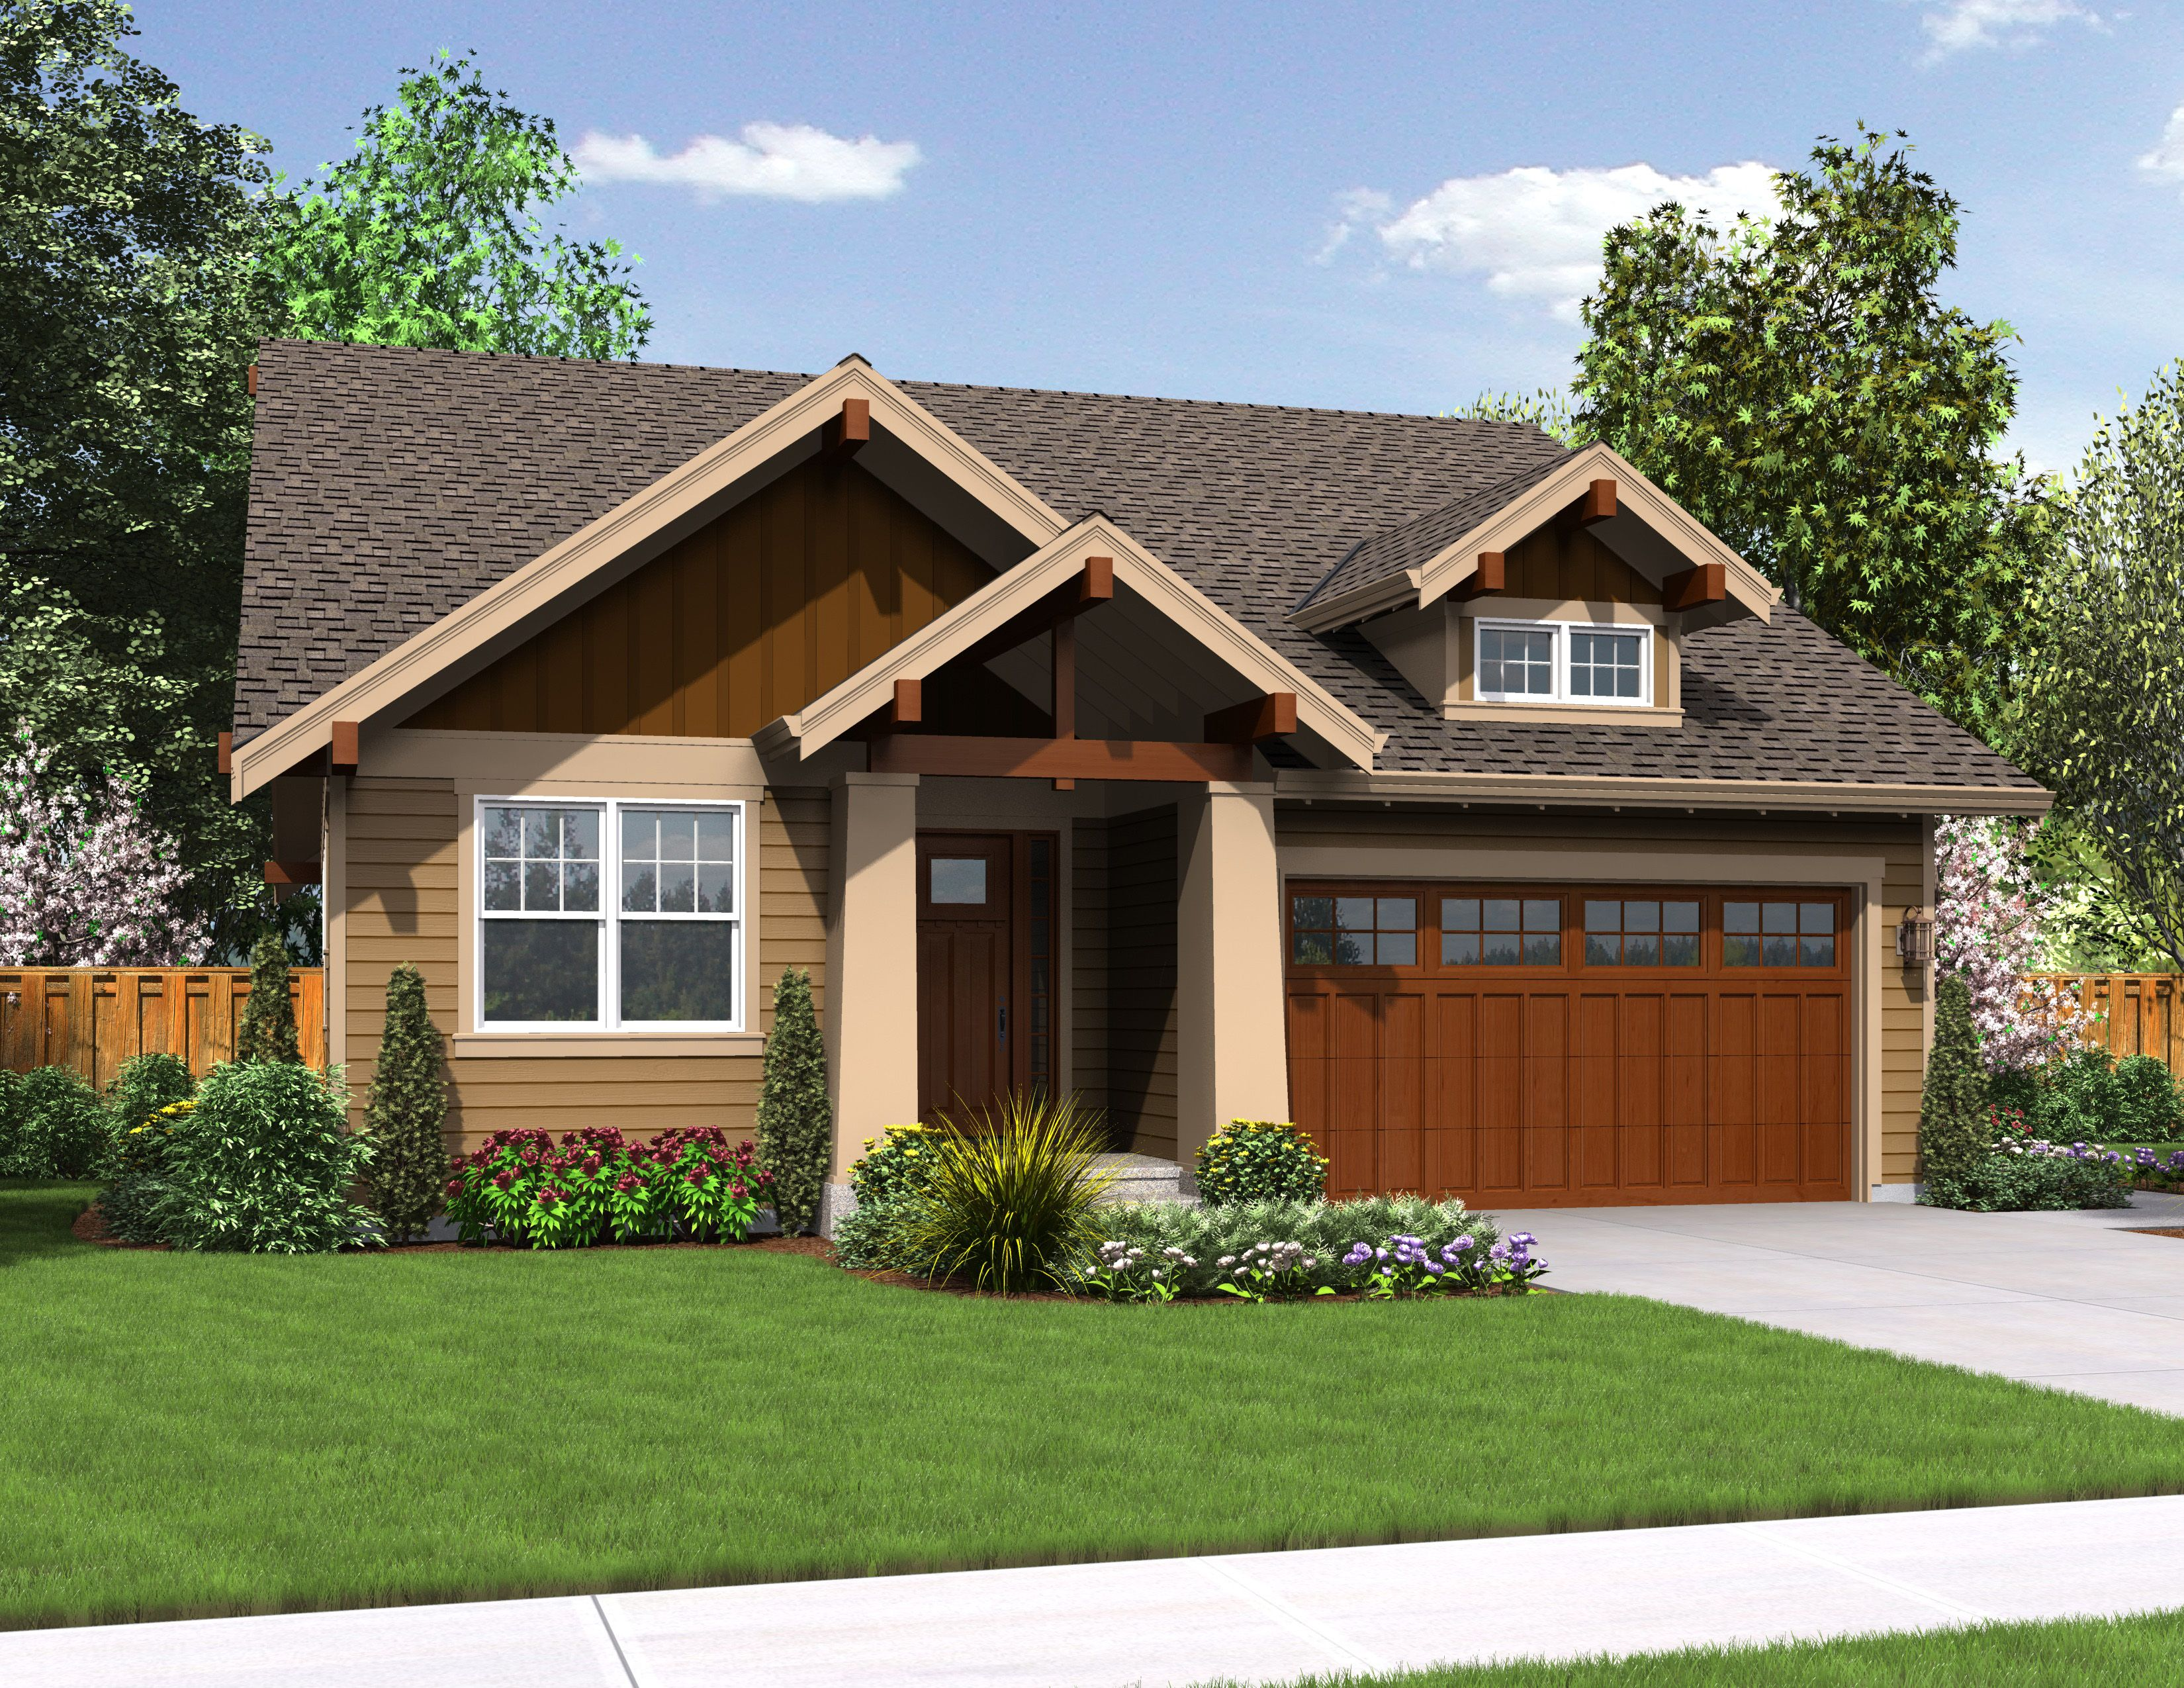 Craftsman Ranch Home Exterior plan 69554am: 3 bedroom craftsman ranch home plan | house plans